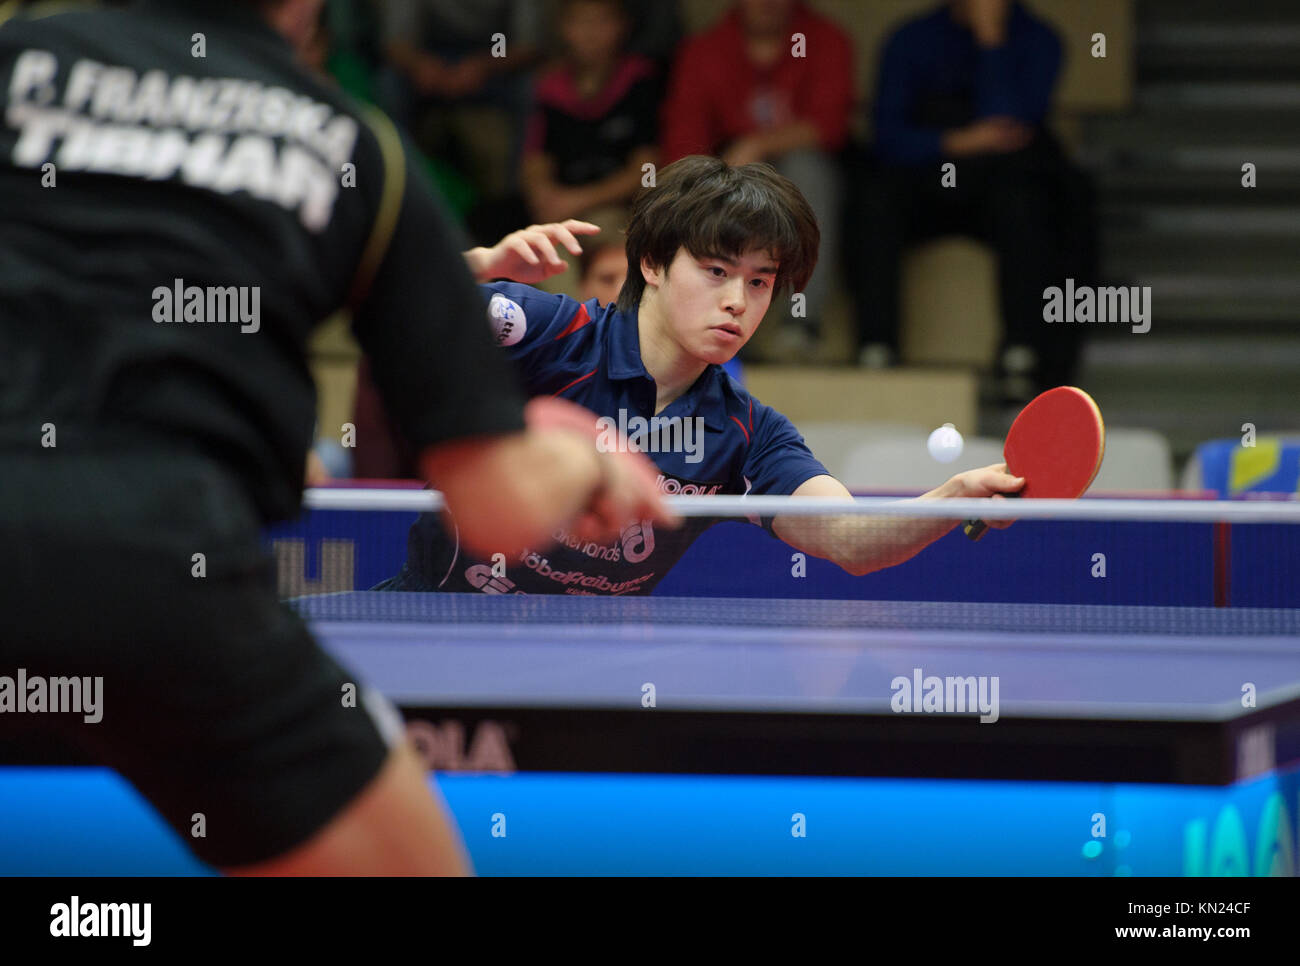 Germany. 10th Dec, 2017. Deutschland. 10th Dec, 2017. Masataka Morizono (Gruenwettersbach), versus Patrick Franziska - Stock Image